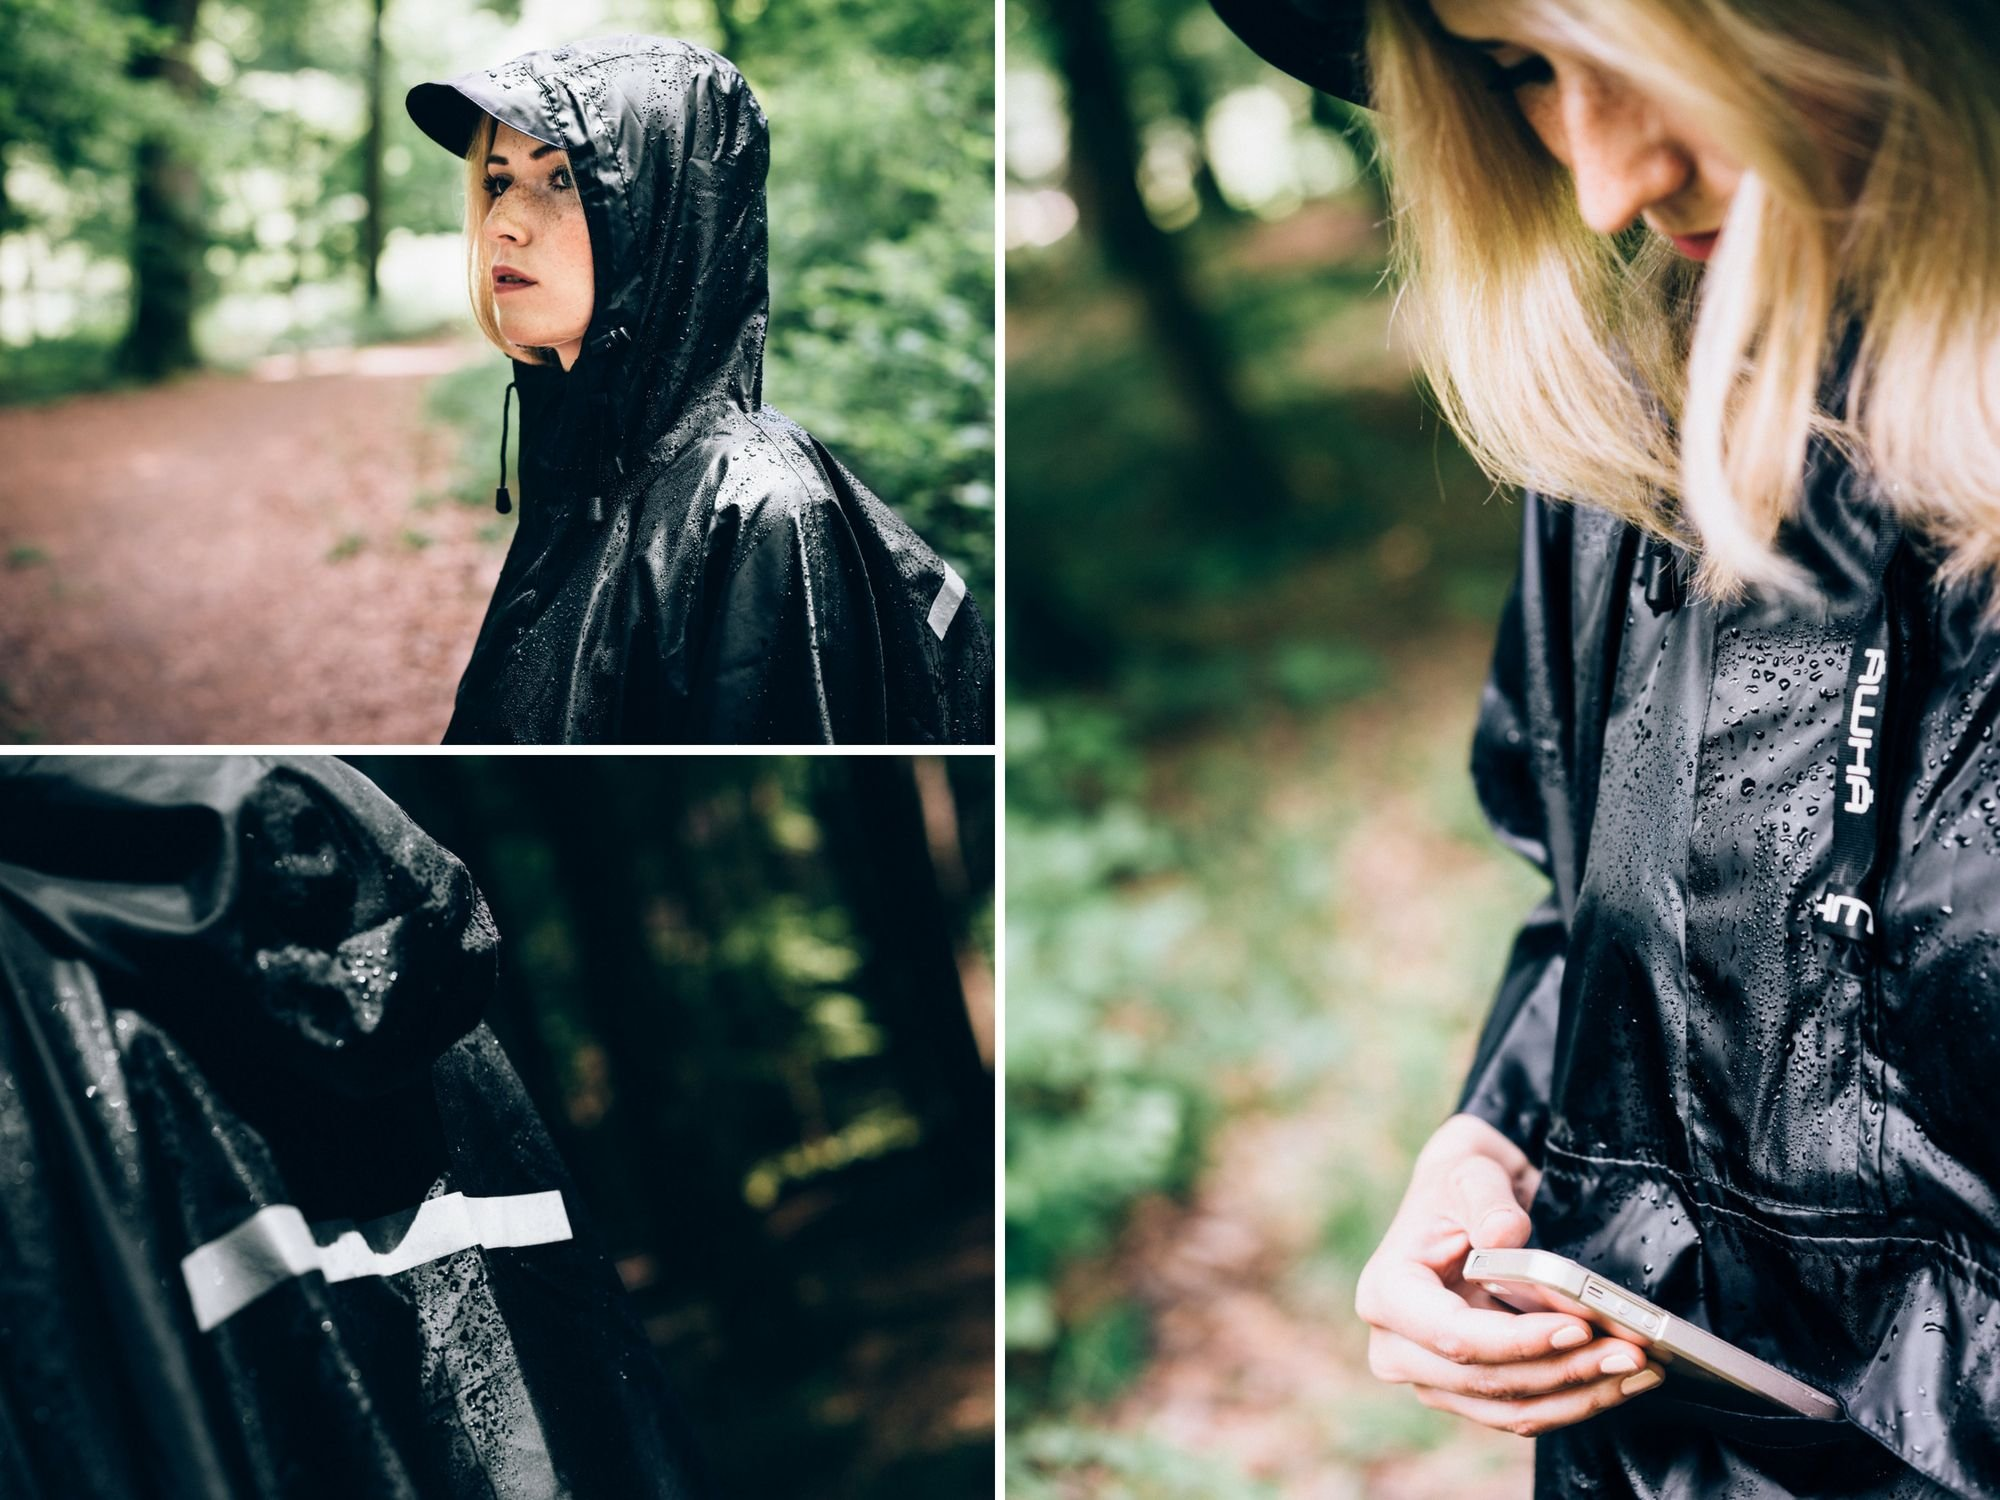 81EA7zC9LLL - AWHA rain poncho black, unisex - the extra long rain cover with a zipper and chest pocket